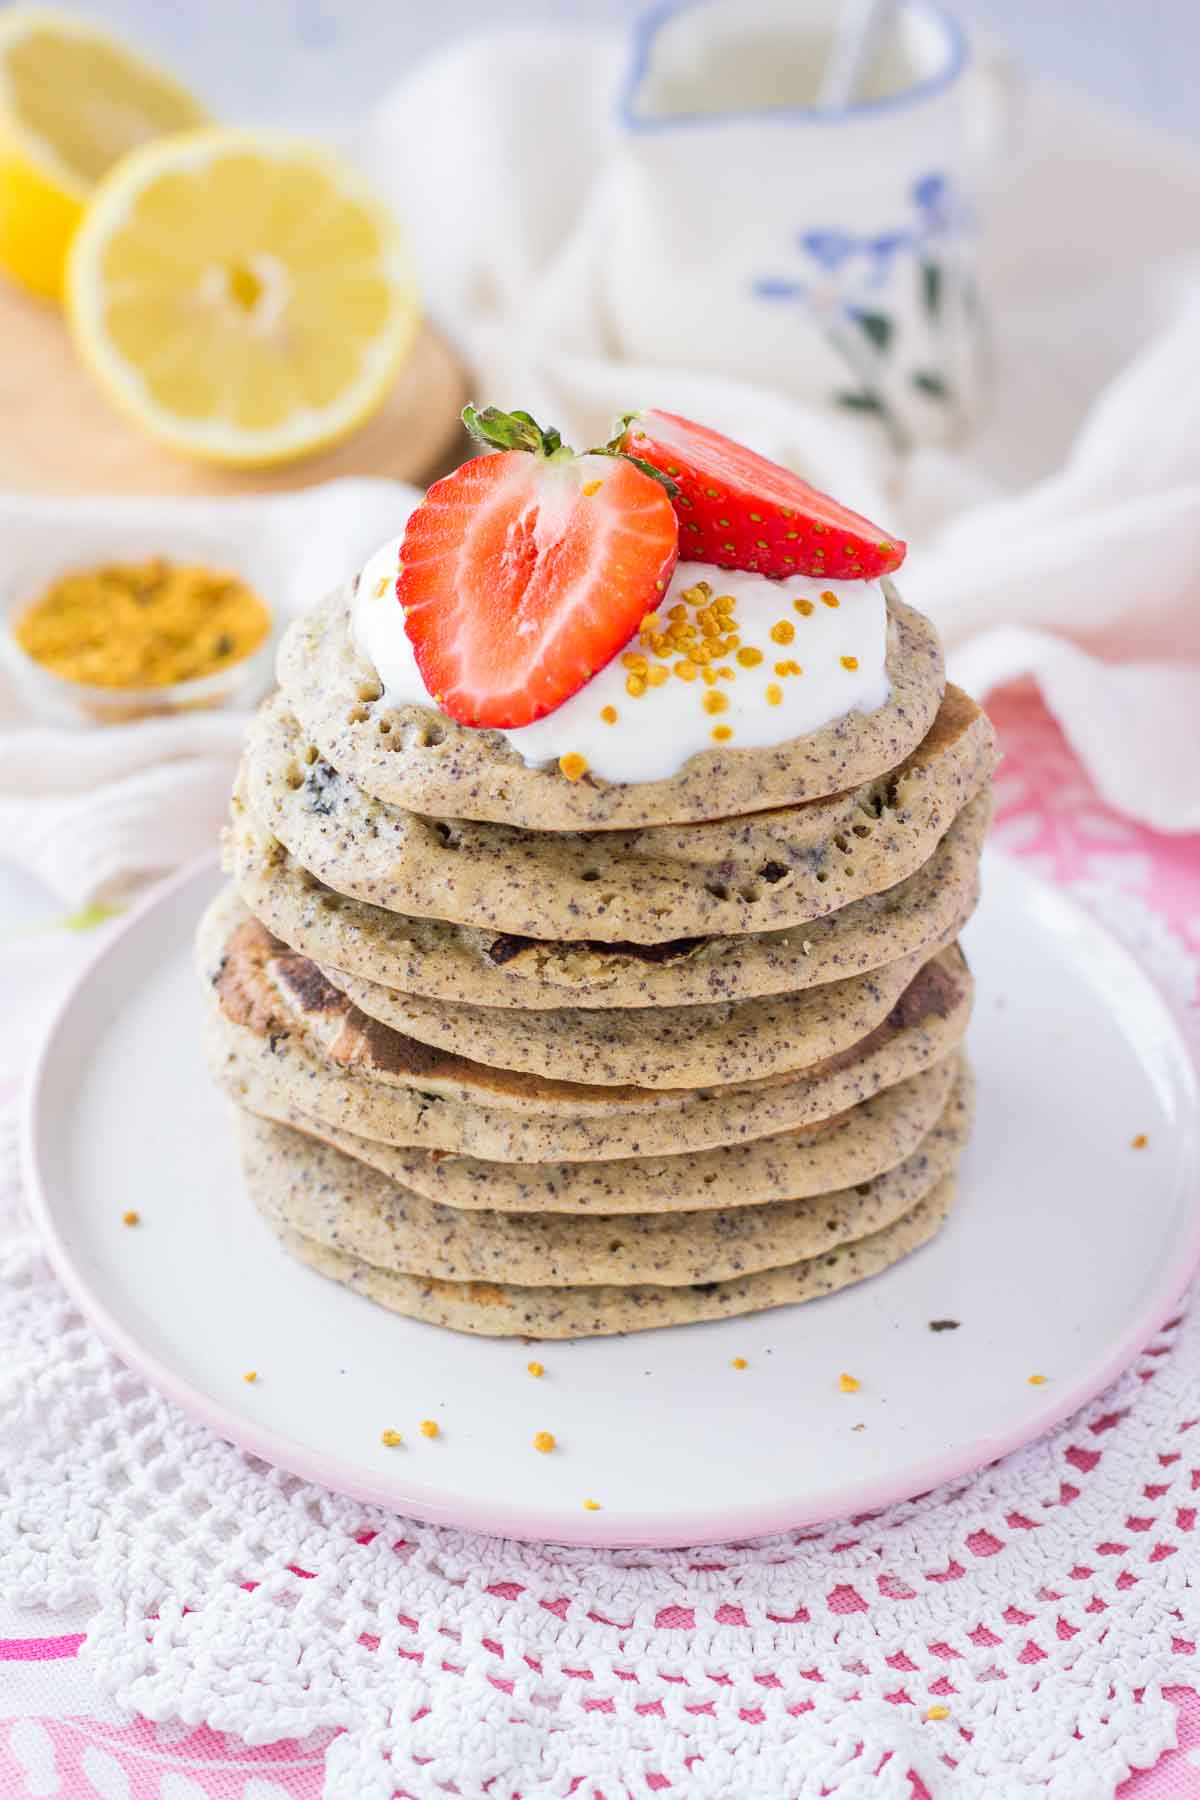 Healthy lemon pancakes made with poppy seeds served on a plate with fresh strawberries.